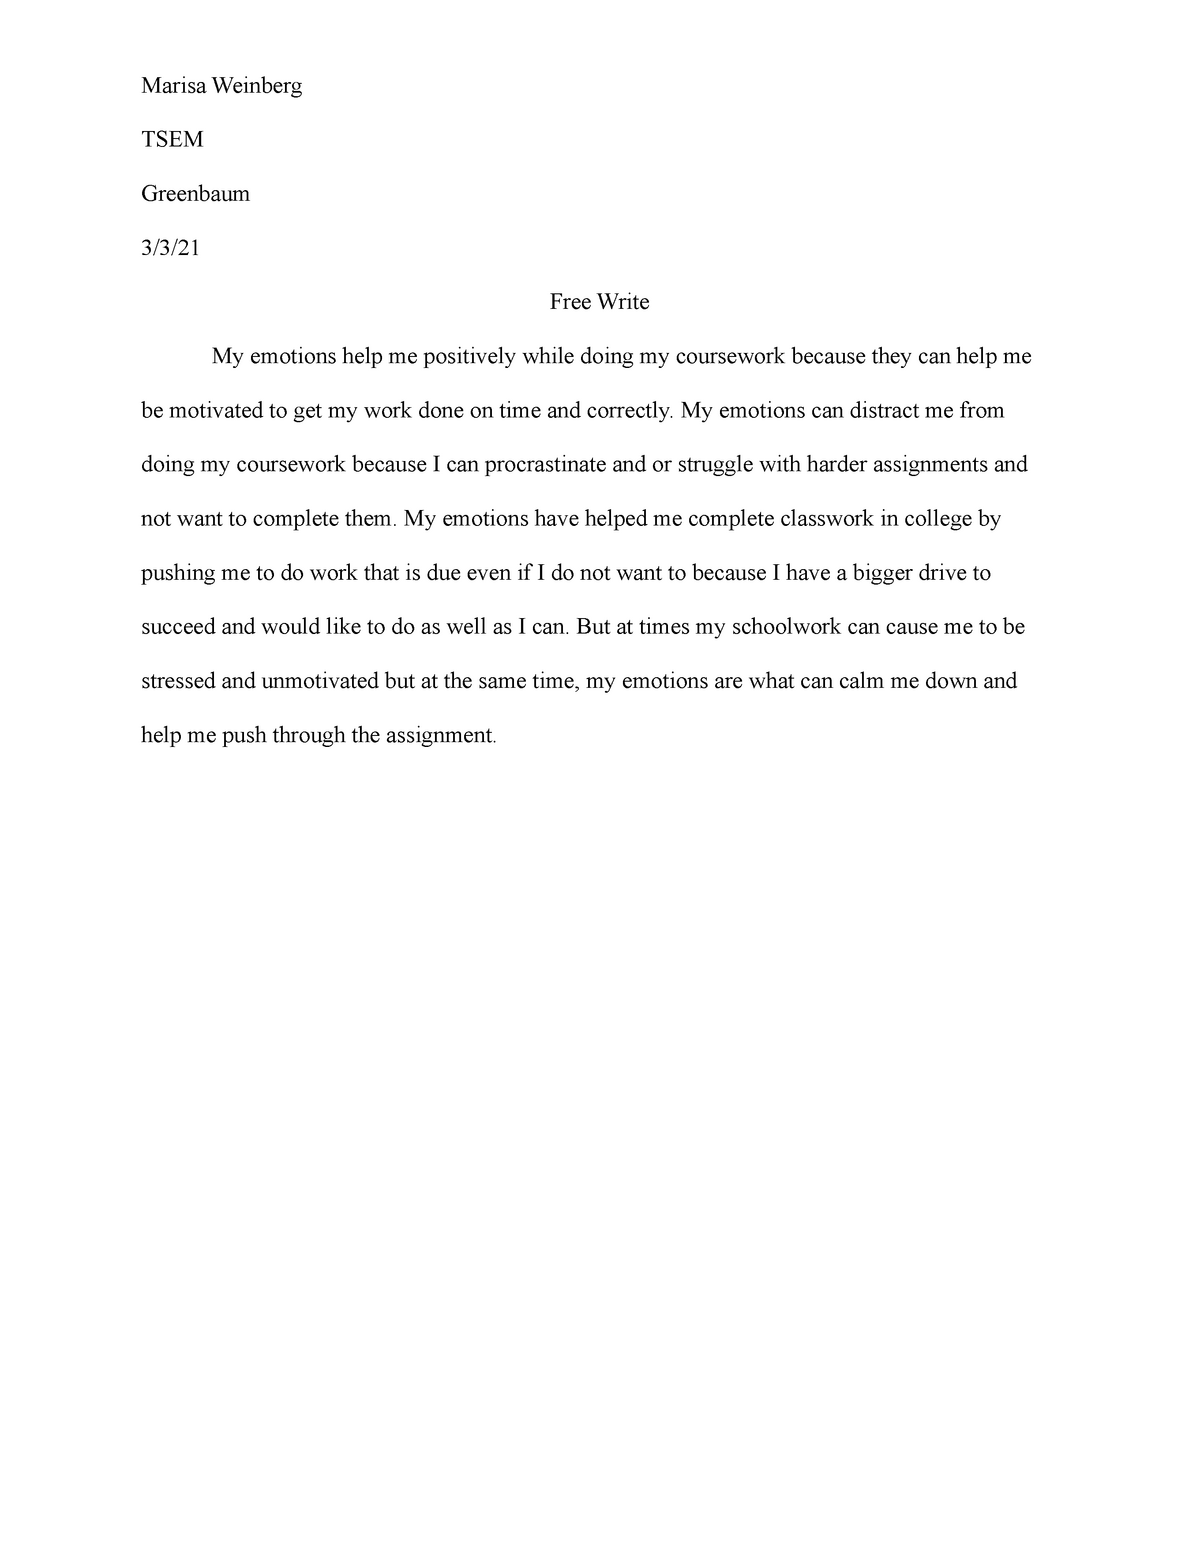 write a good argumentative essay For Business: The Rules Are Made To Be Broken